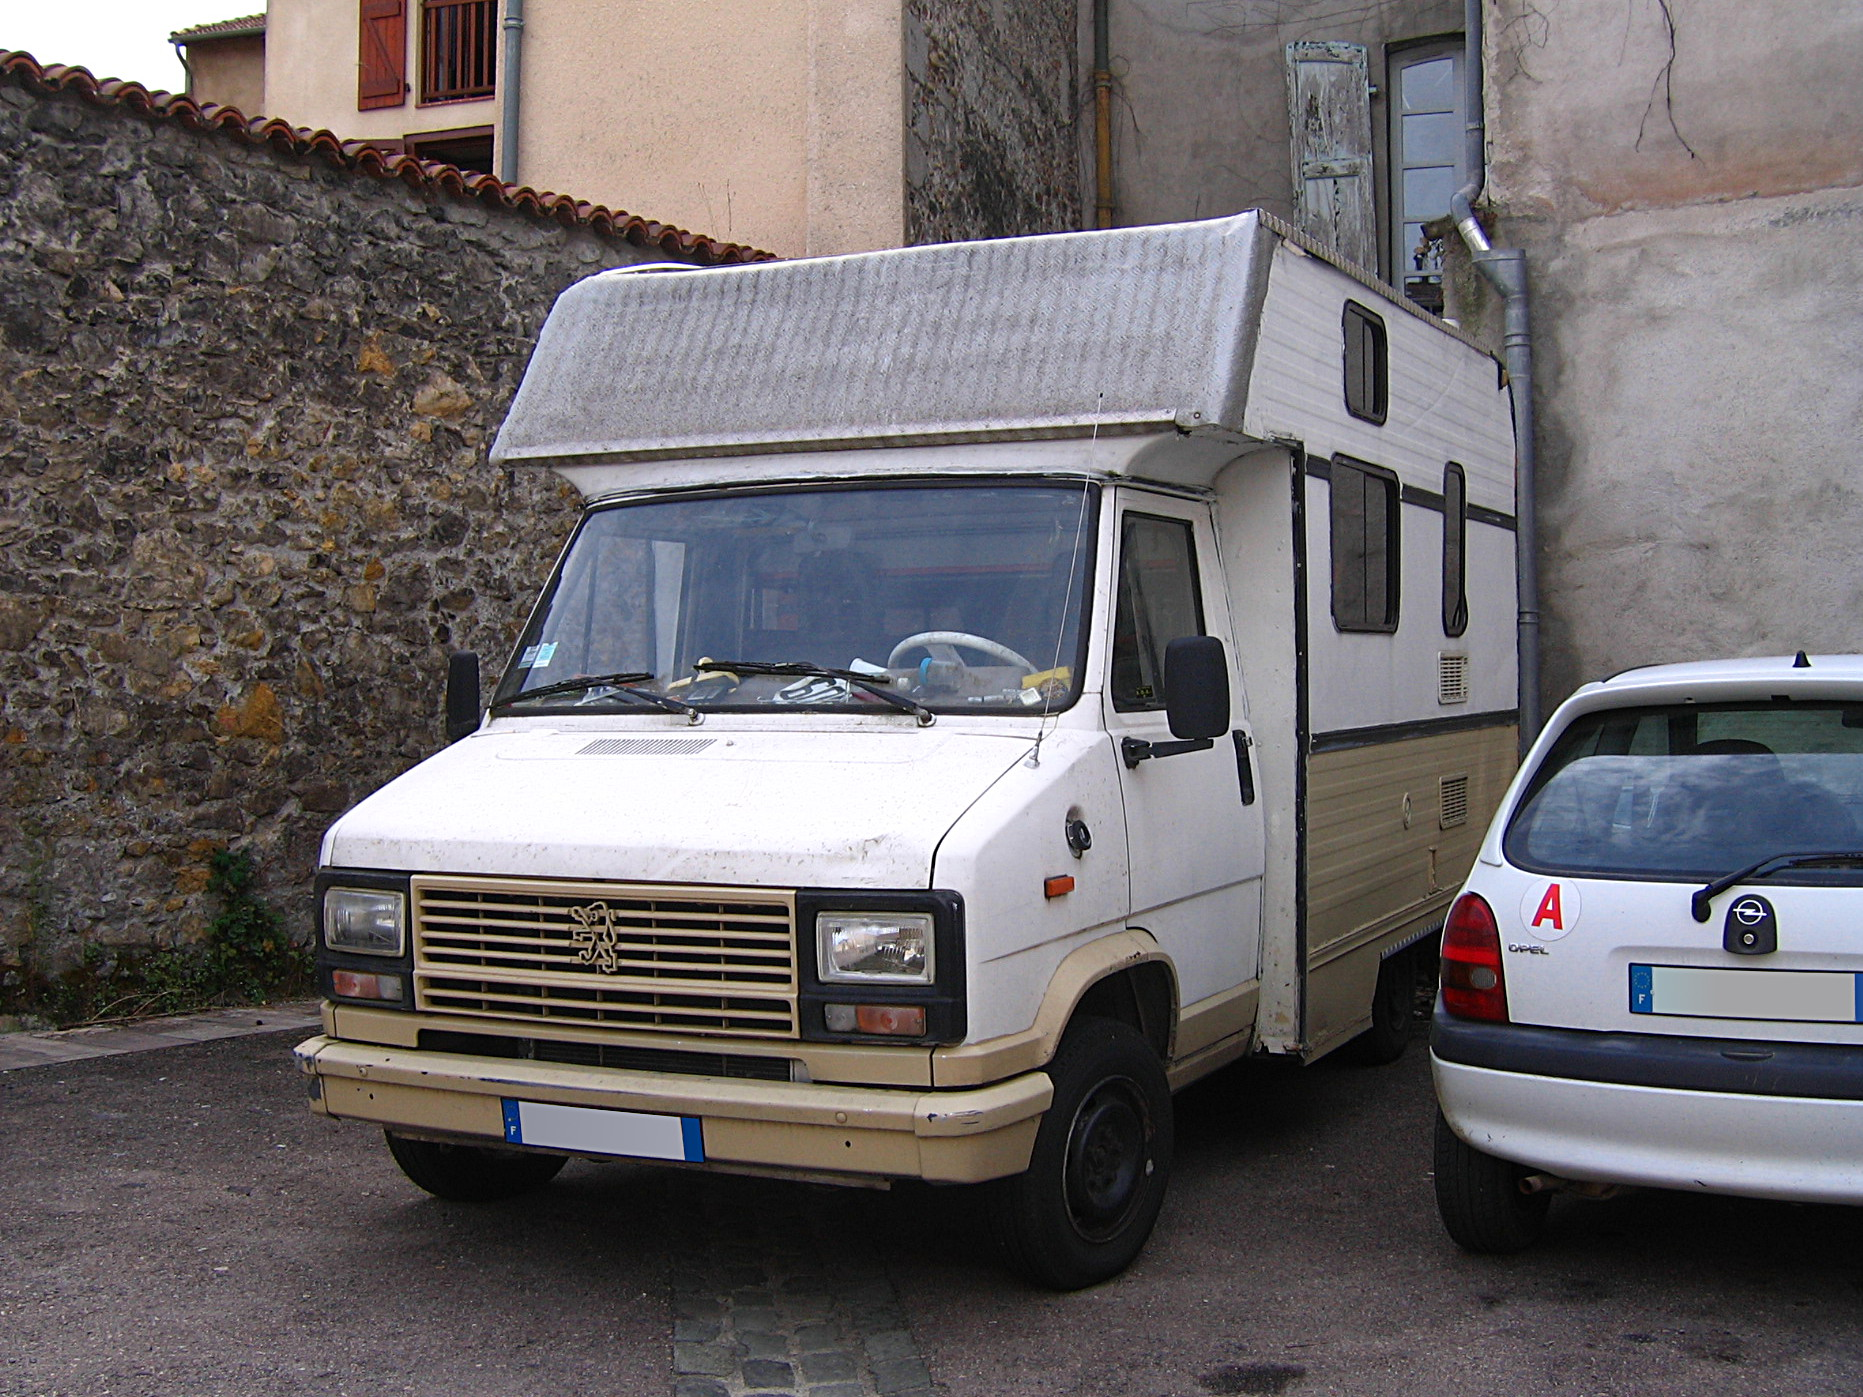 File1981 90 Peugeot J5 Based DIY Campervan